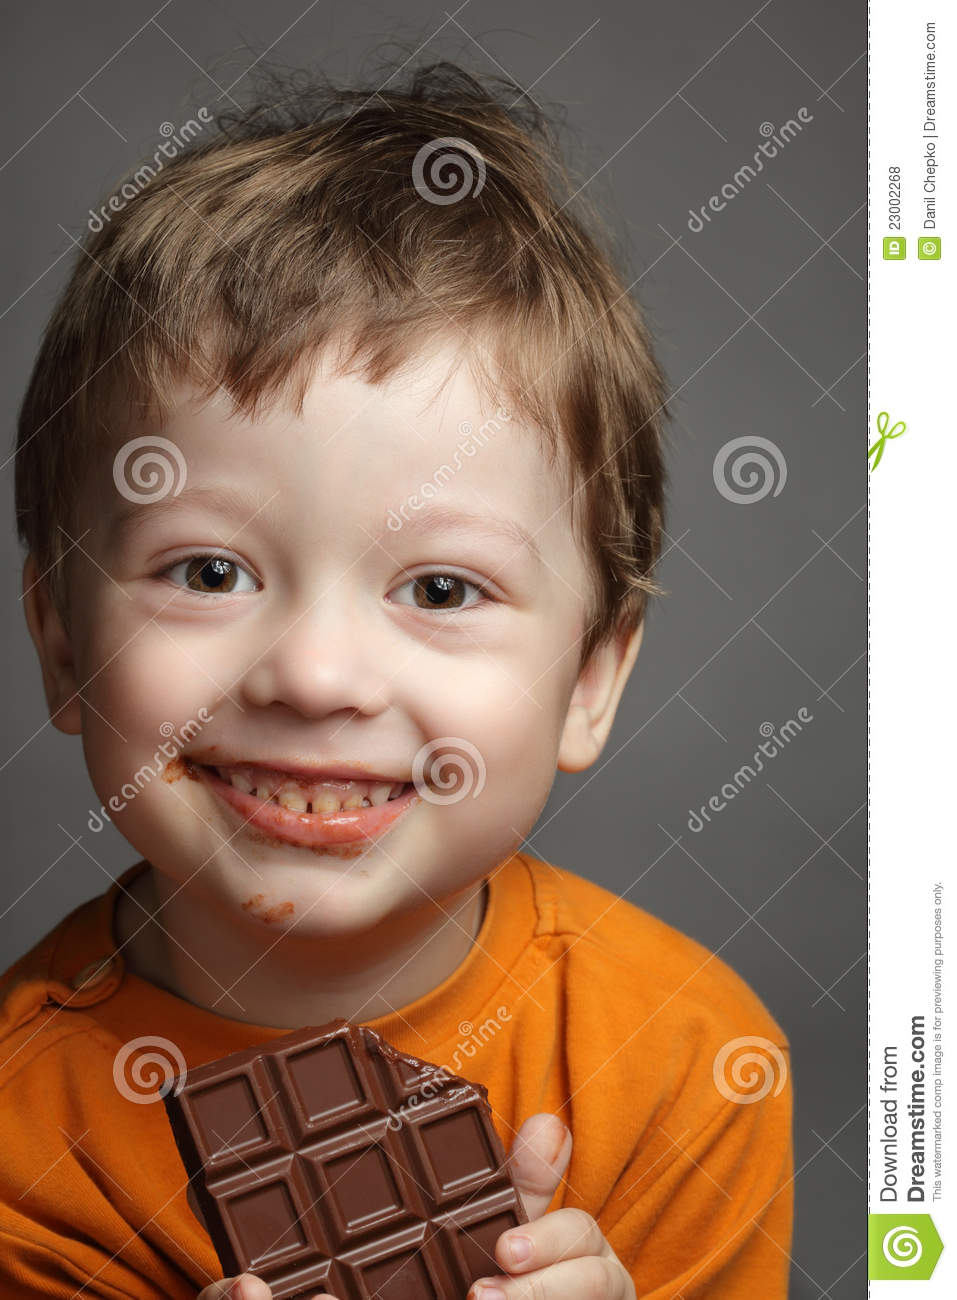 Boy With Chocolate Royalty Free Stock Photos Image 23002268